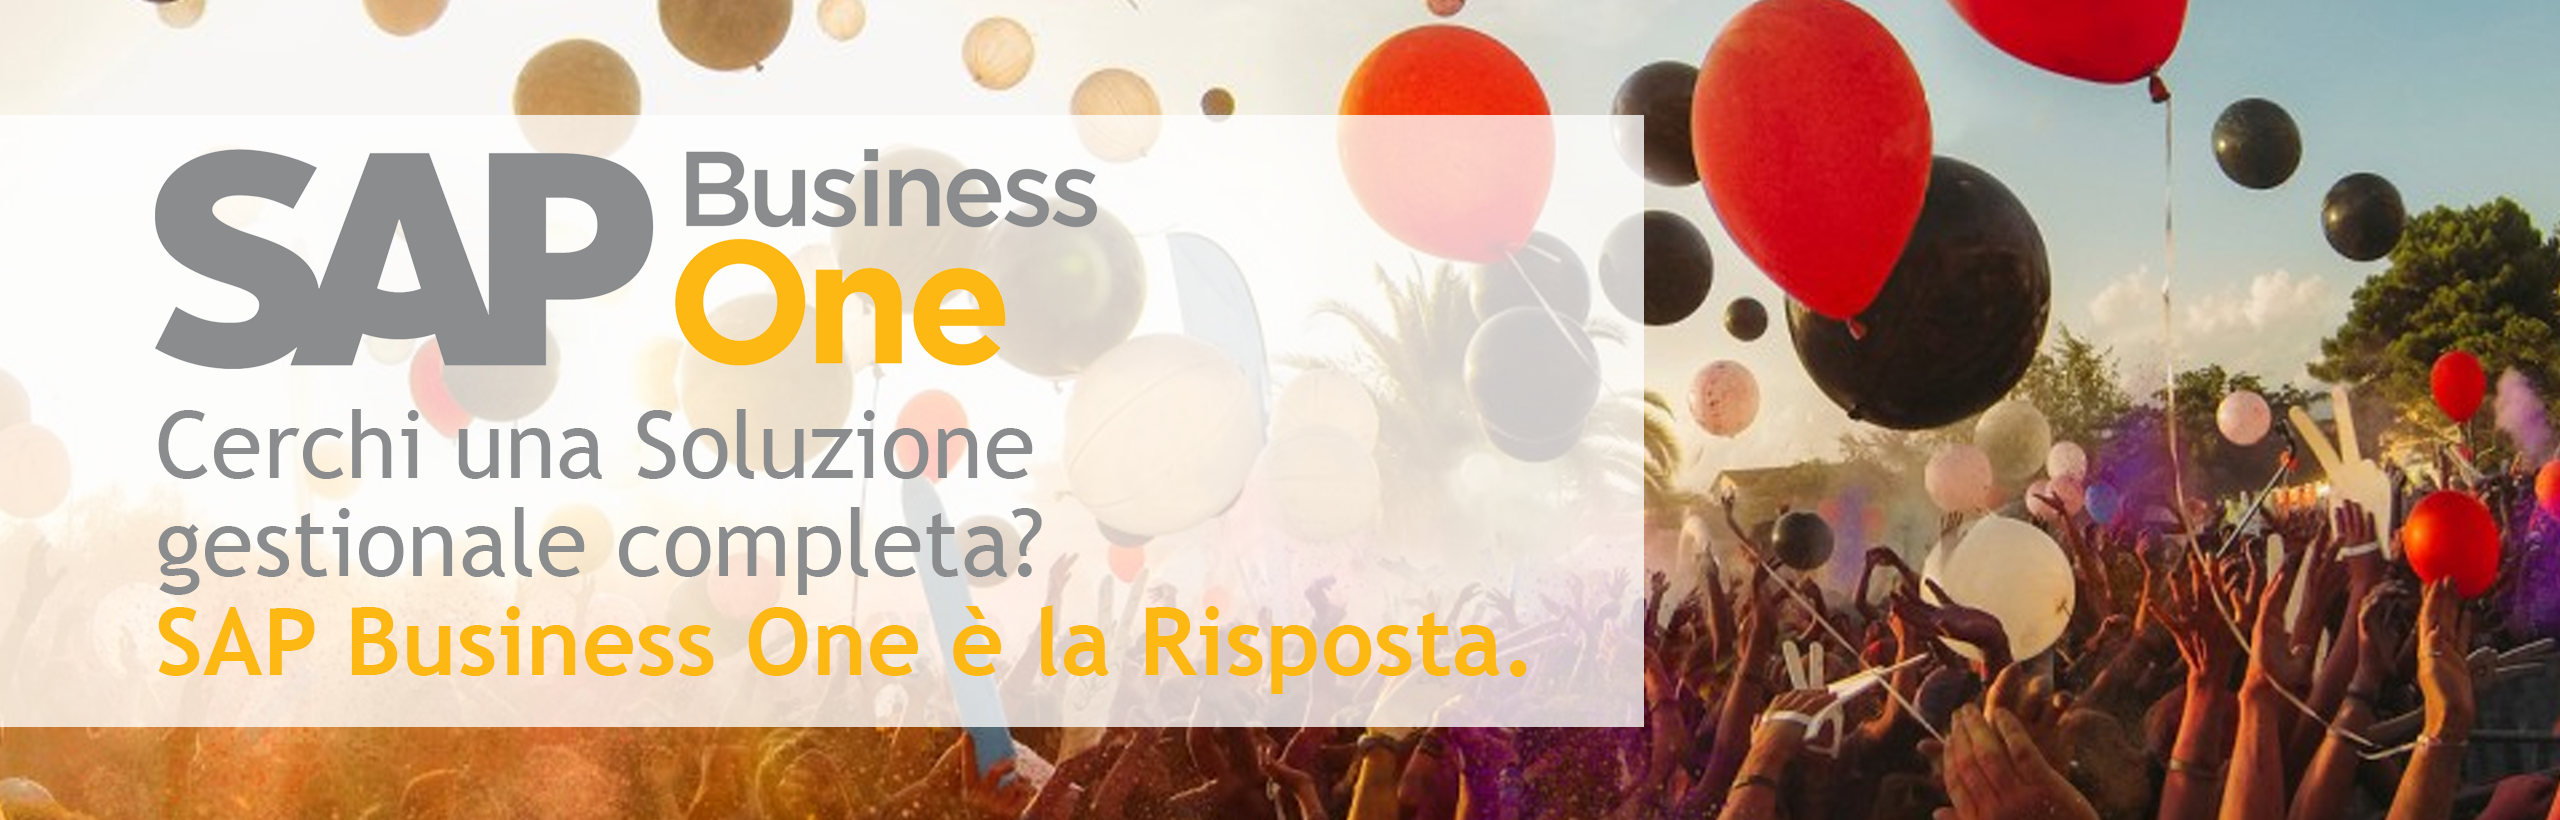 sap business one e brain system